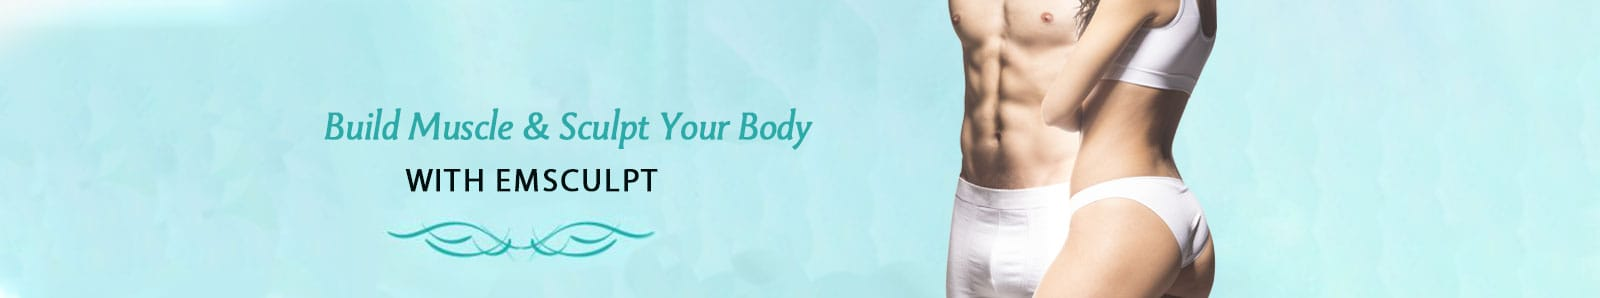 emsculpt at slim studio at buckhead plastic surgery